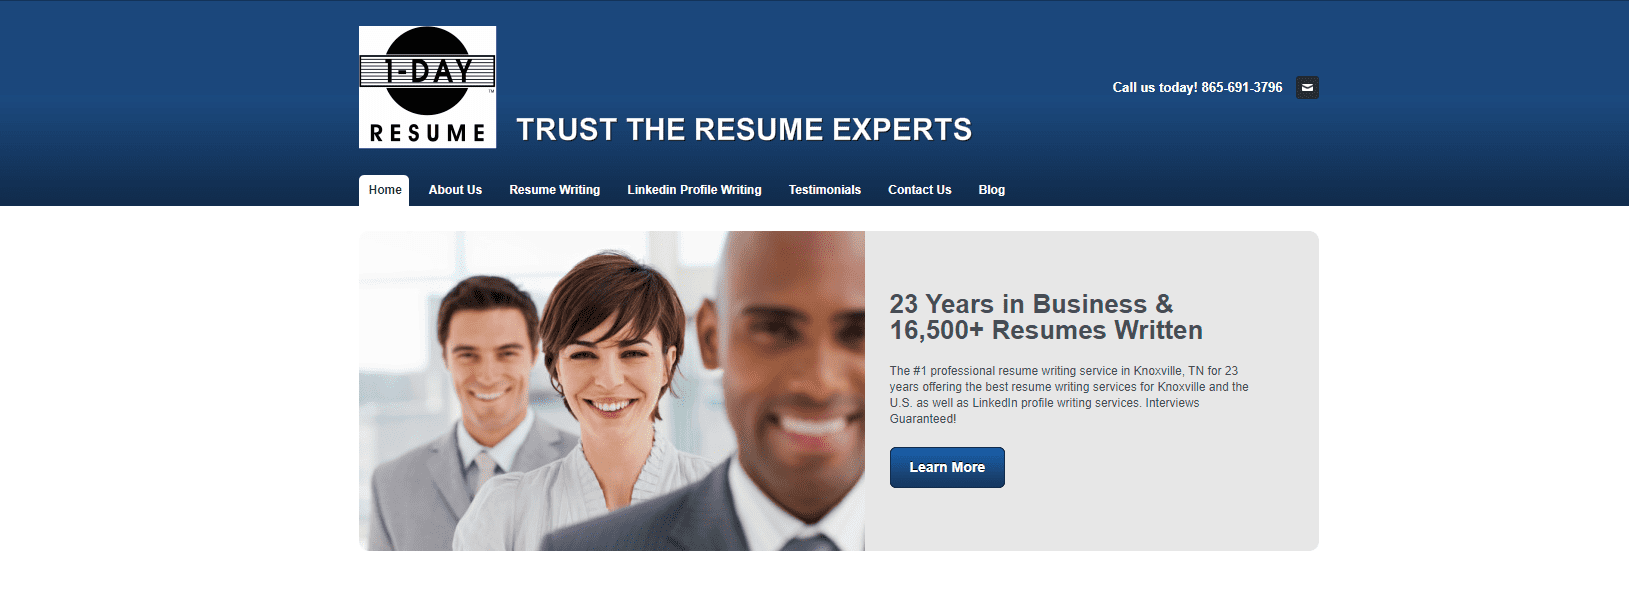 10 Best Military Resume Writing Services in 2020: No. 8 1-Day Resume